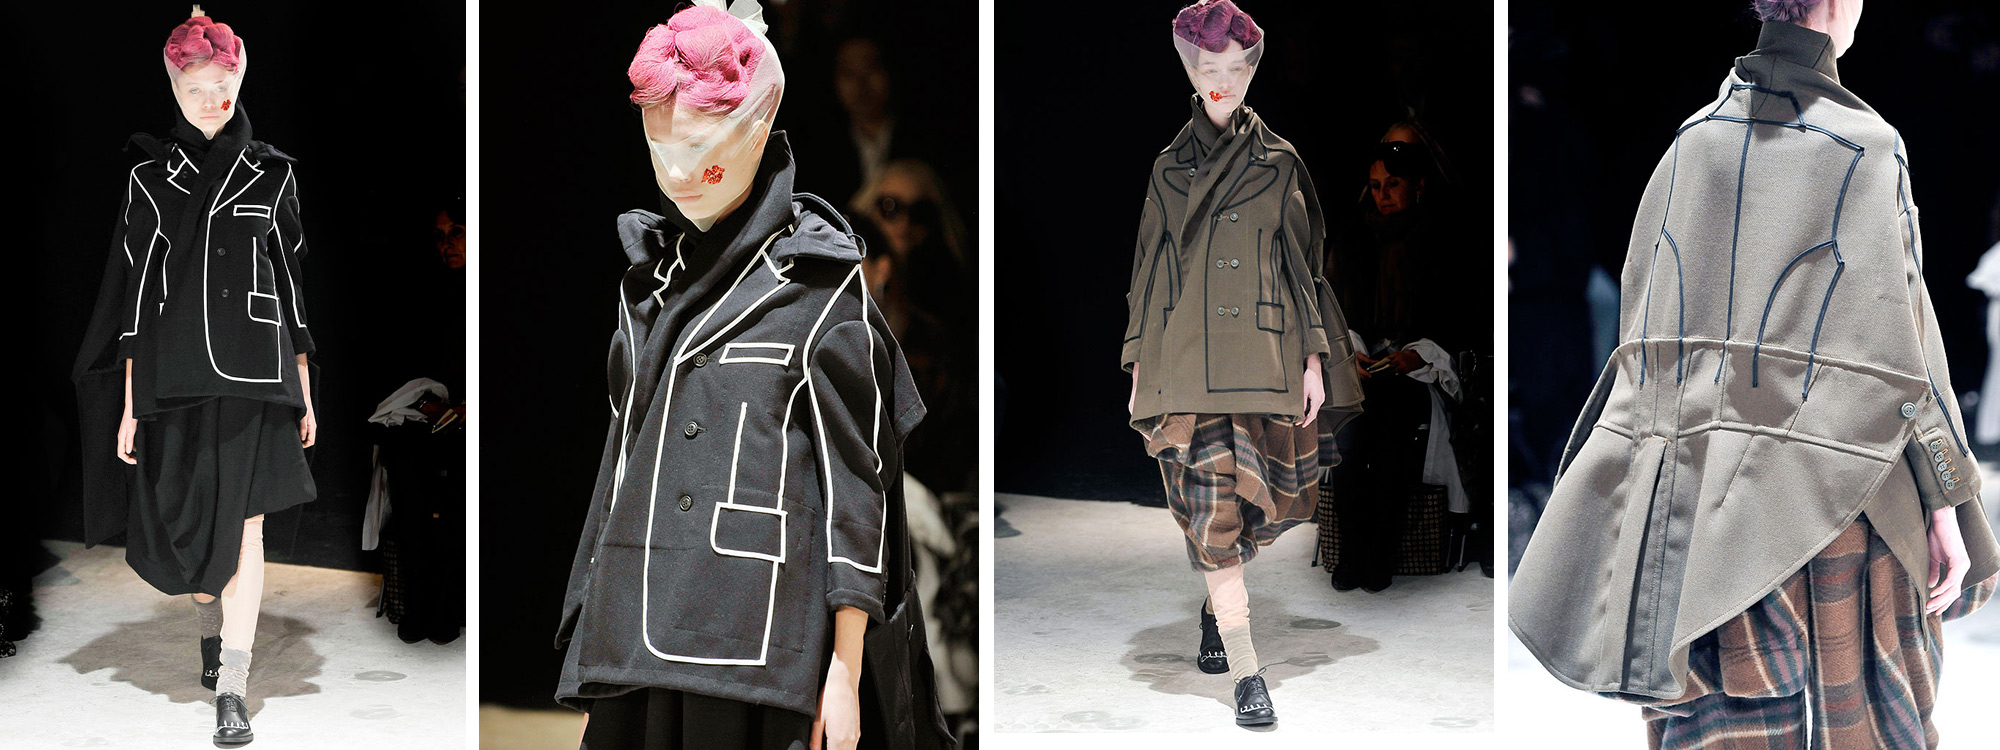 Comme des Garçons via The Rosenrot | For The Love of Avant-Garde Fashion